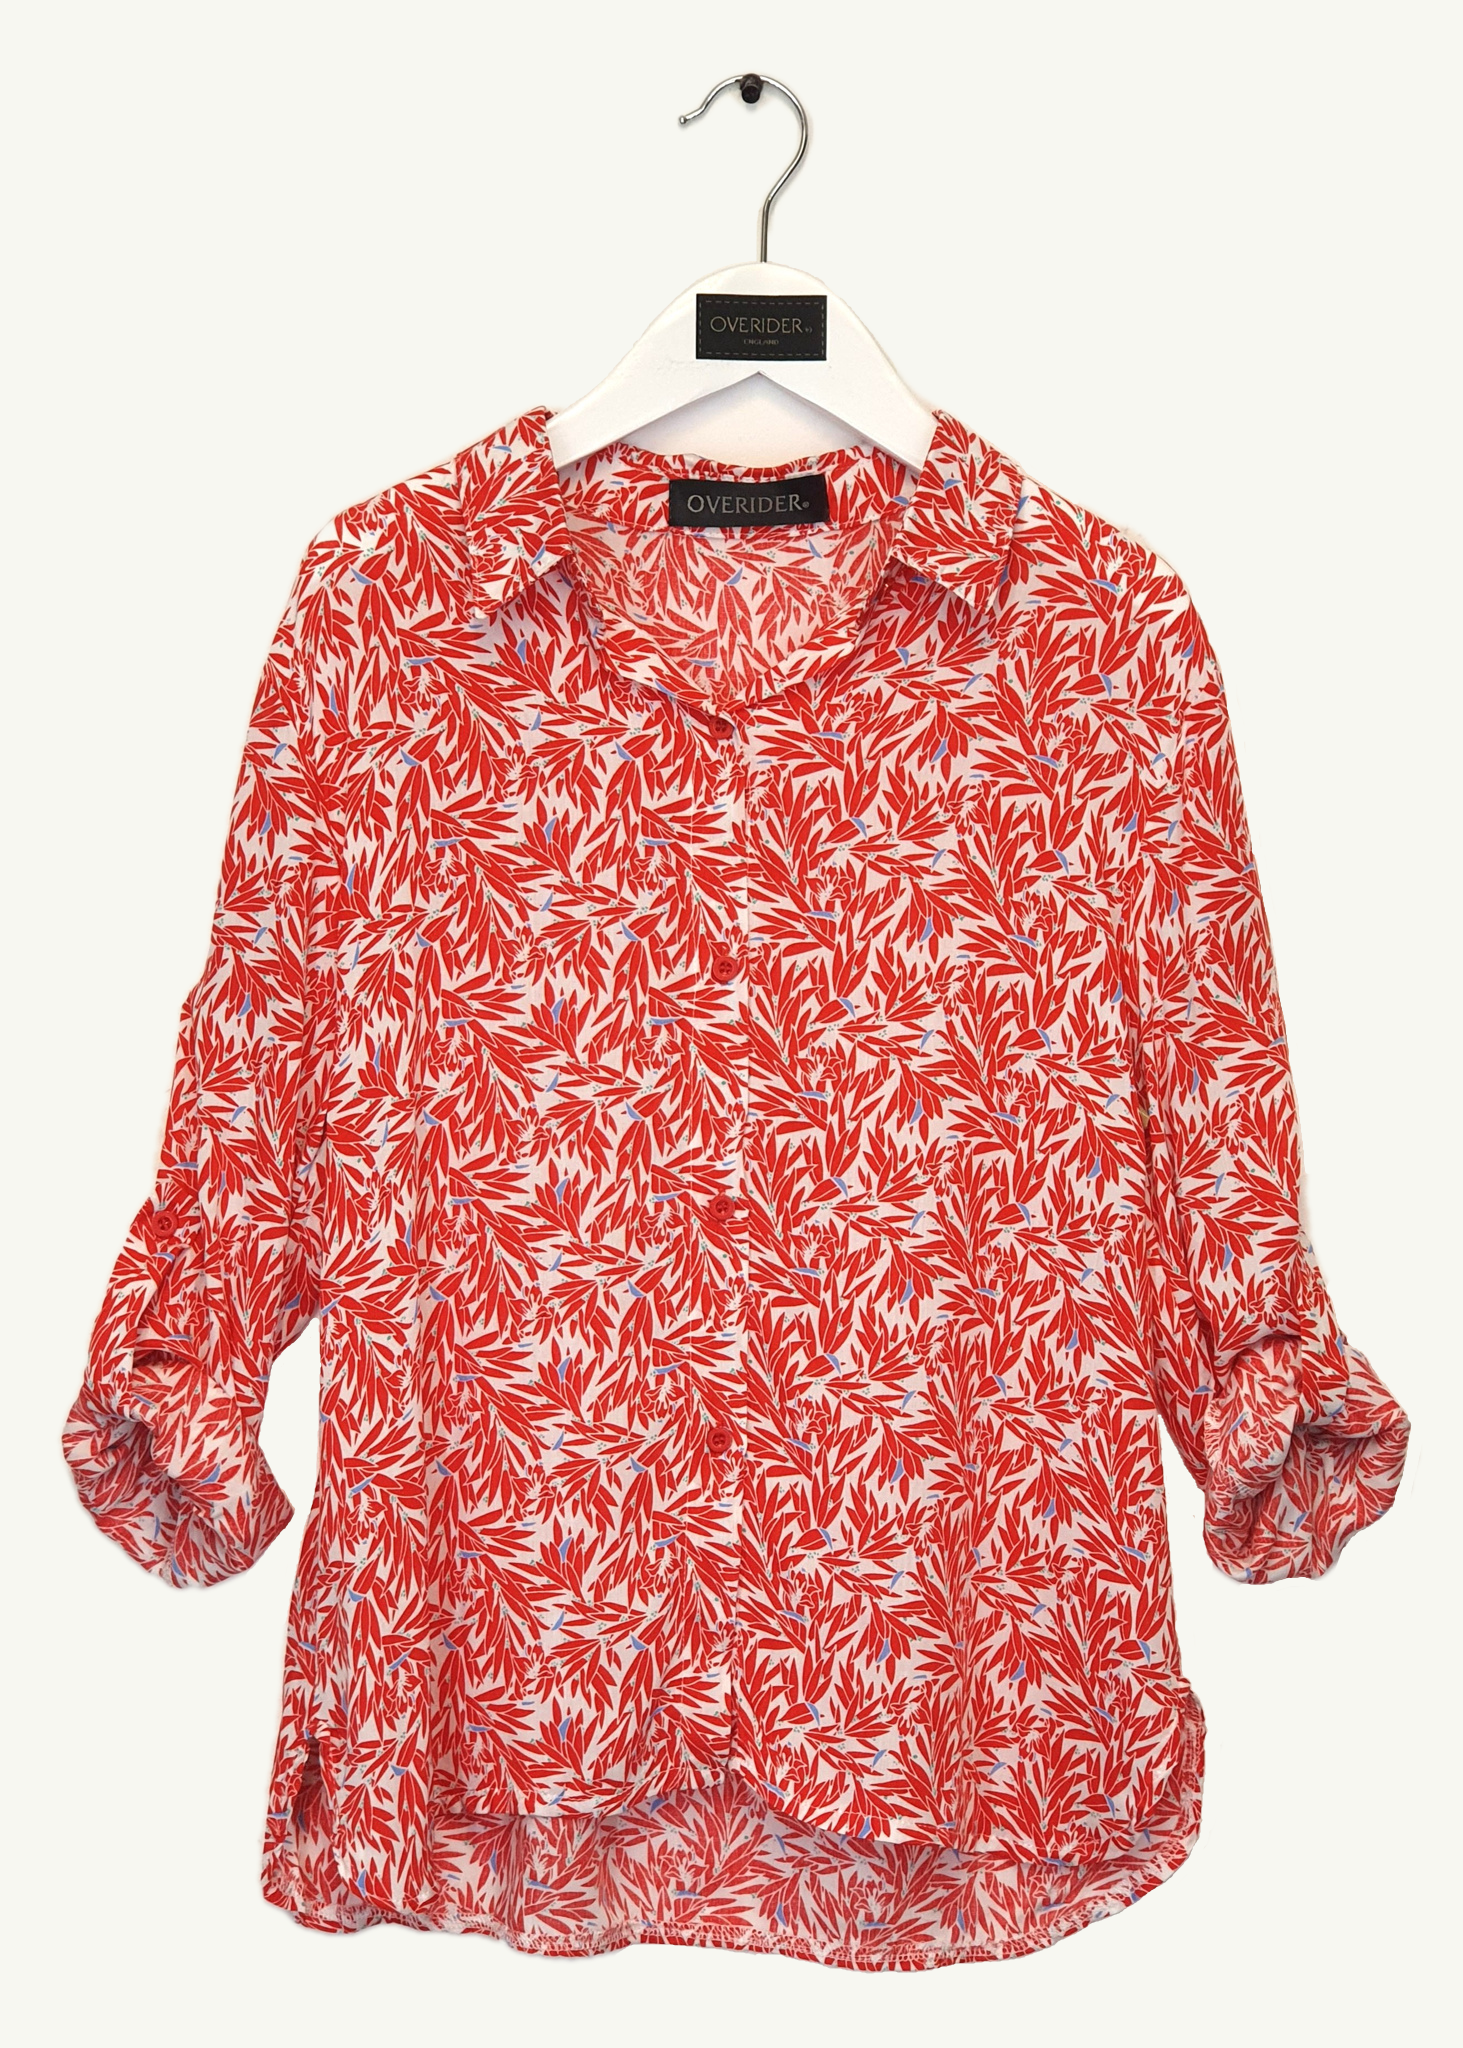 VIOLETTE - Floral Girls Shirt